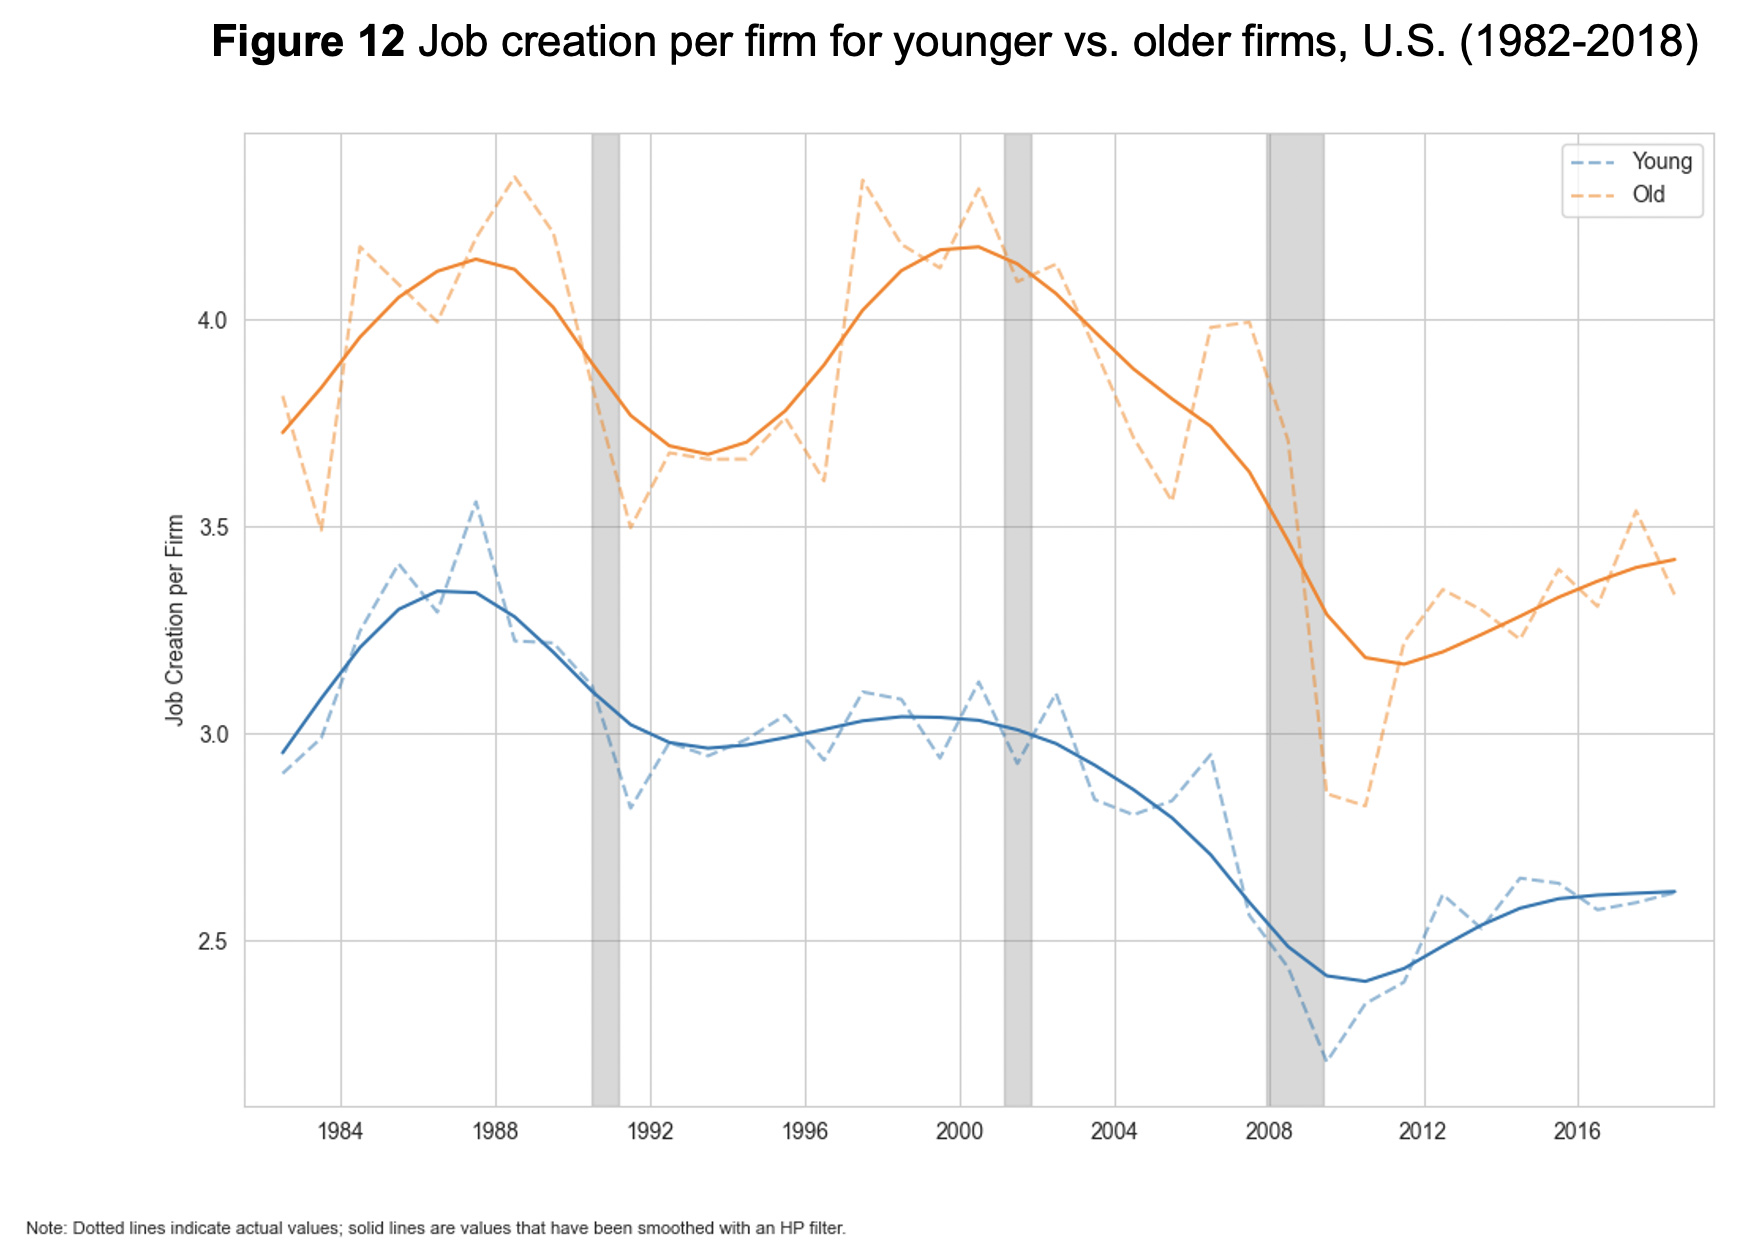 Figure 12: Job creation per firm for younger vs. older firms, U.S. (1982-2018)